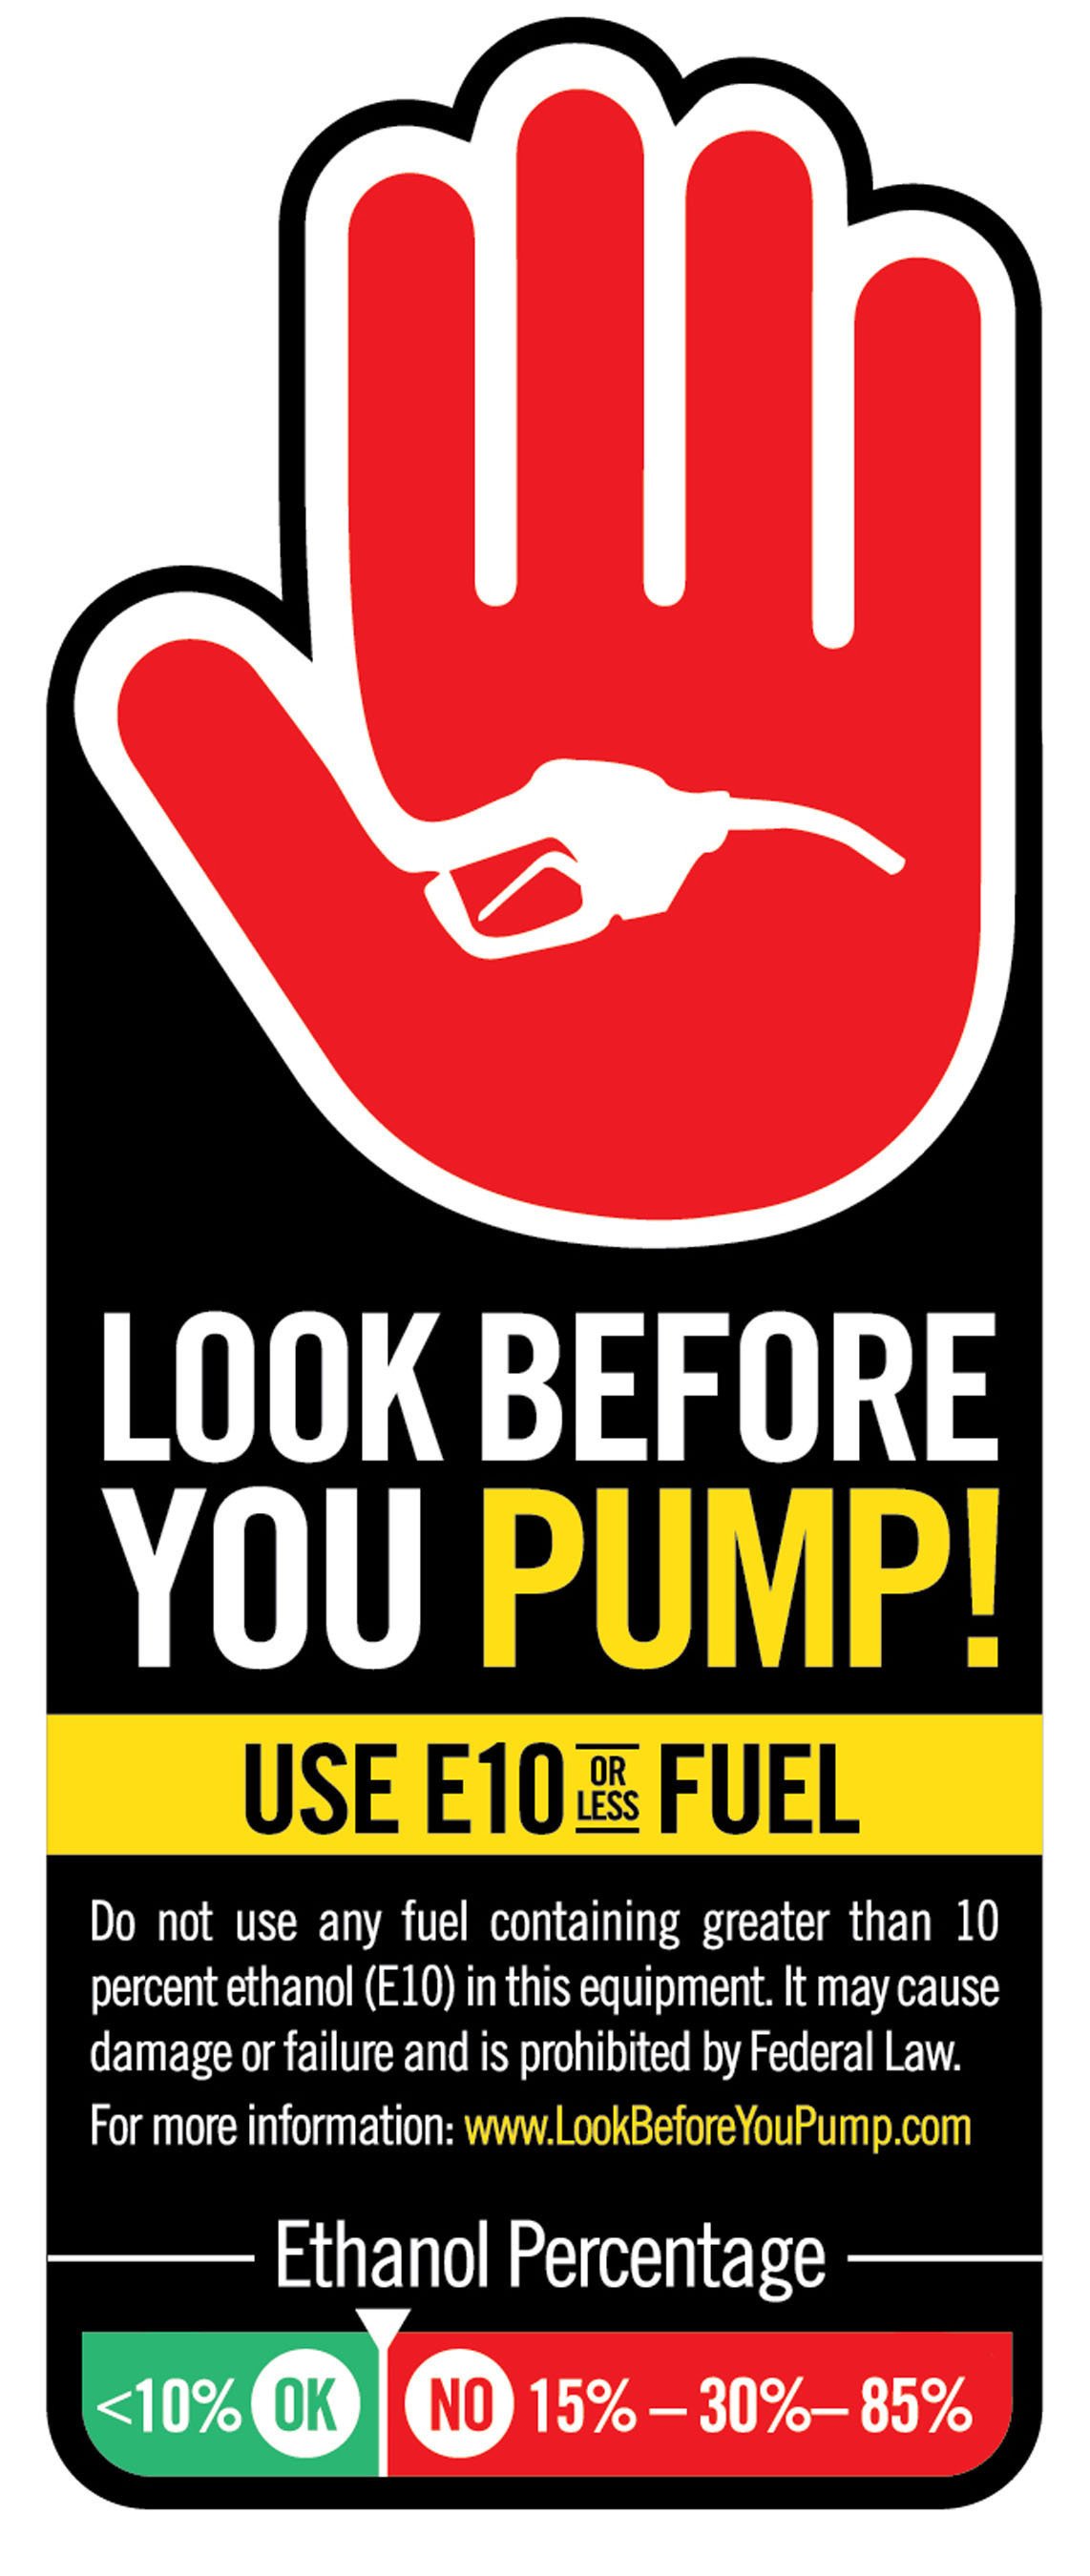 Consumers cautioned to 'Look Before You Pump' at Gas Station. Ethanol education and consumer protection  ...